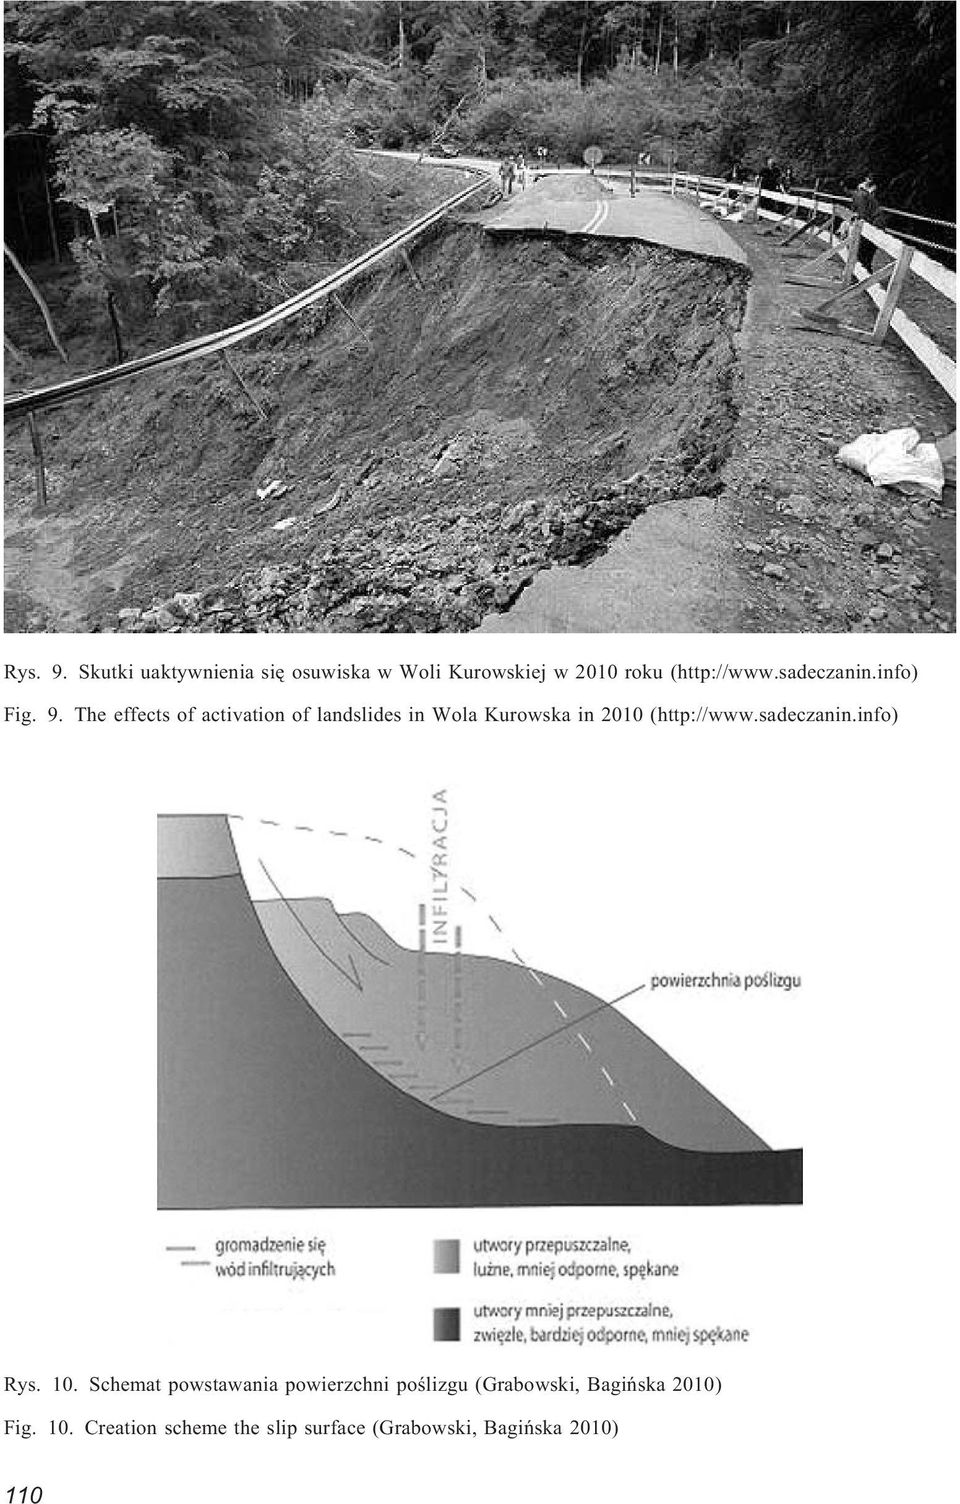 The effects of activation of landslides in Wola Kurowska in 2010 (http://www.sadeczanin.